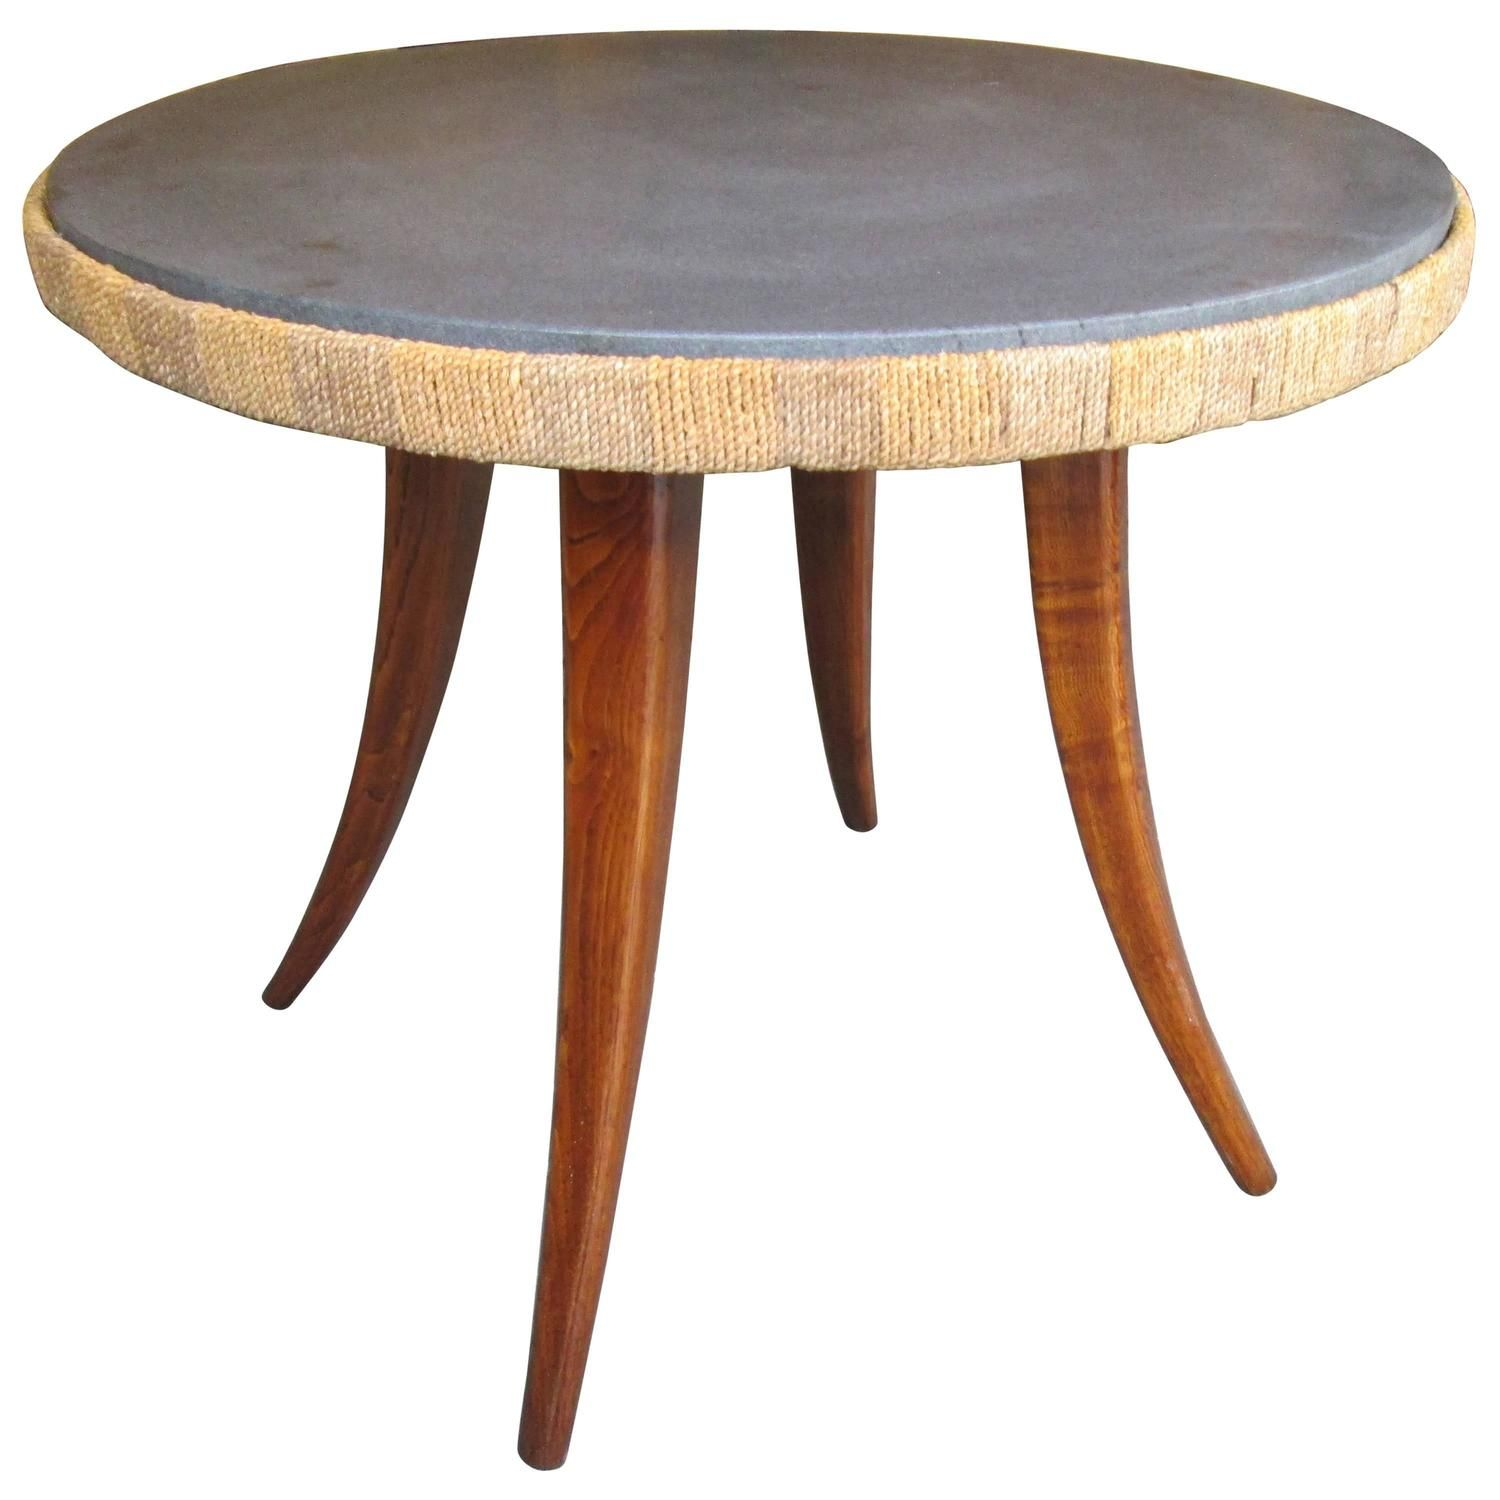 Unusual French 1940s Marble Top Table With Jute Apron On Splayed Legs Marble Table Top Marble Top Splayed Leg